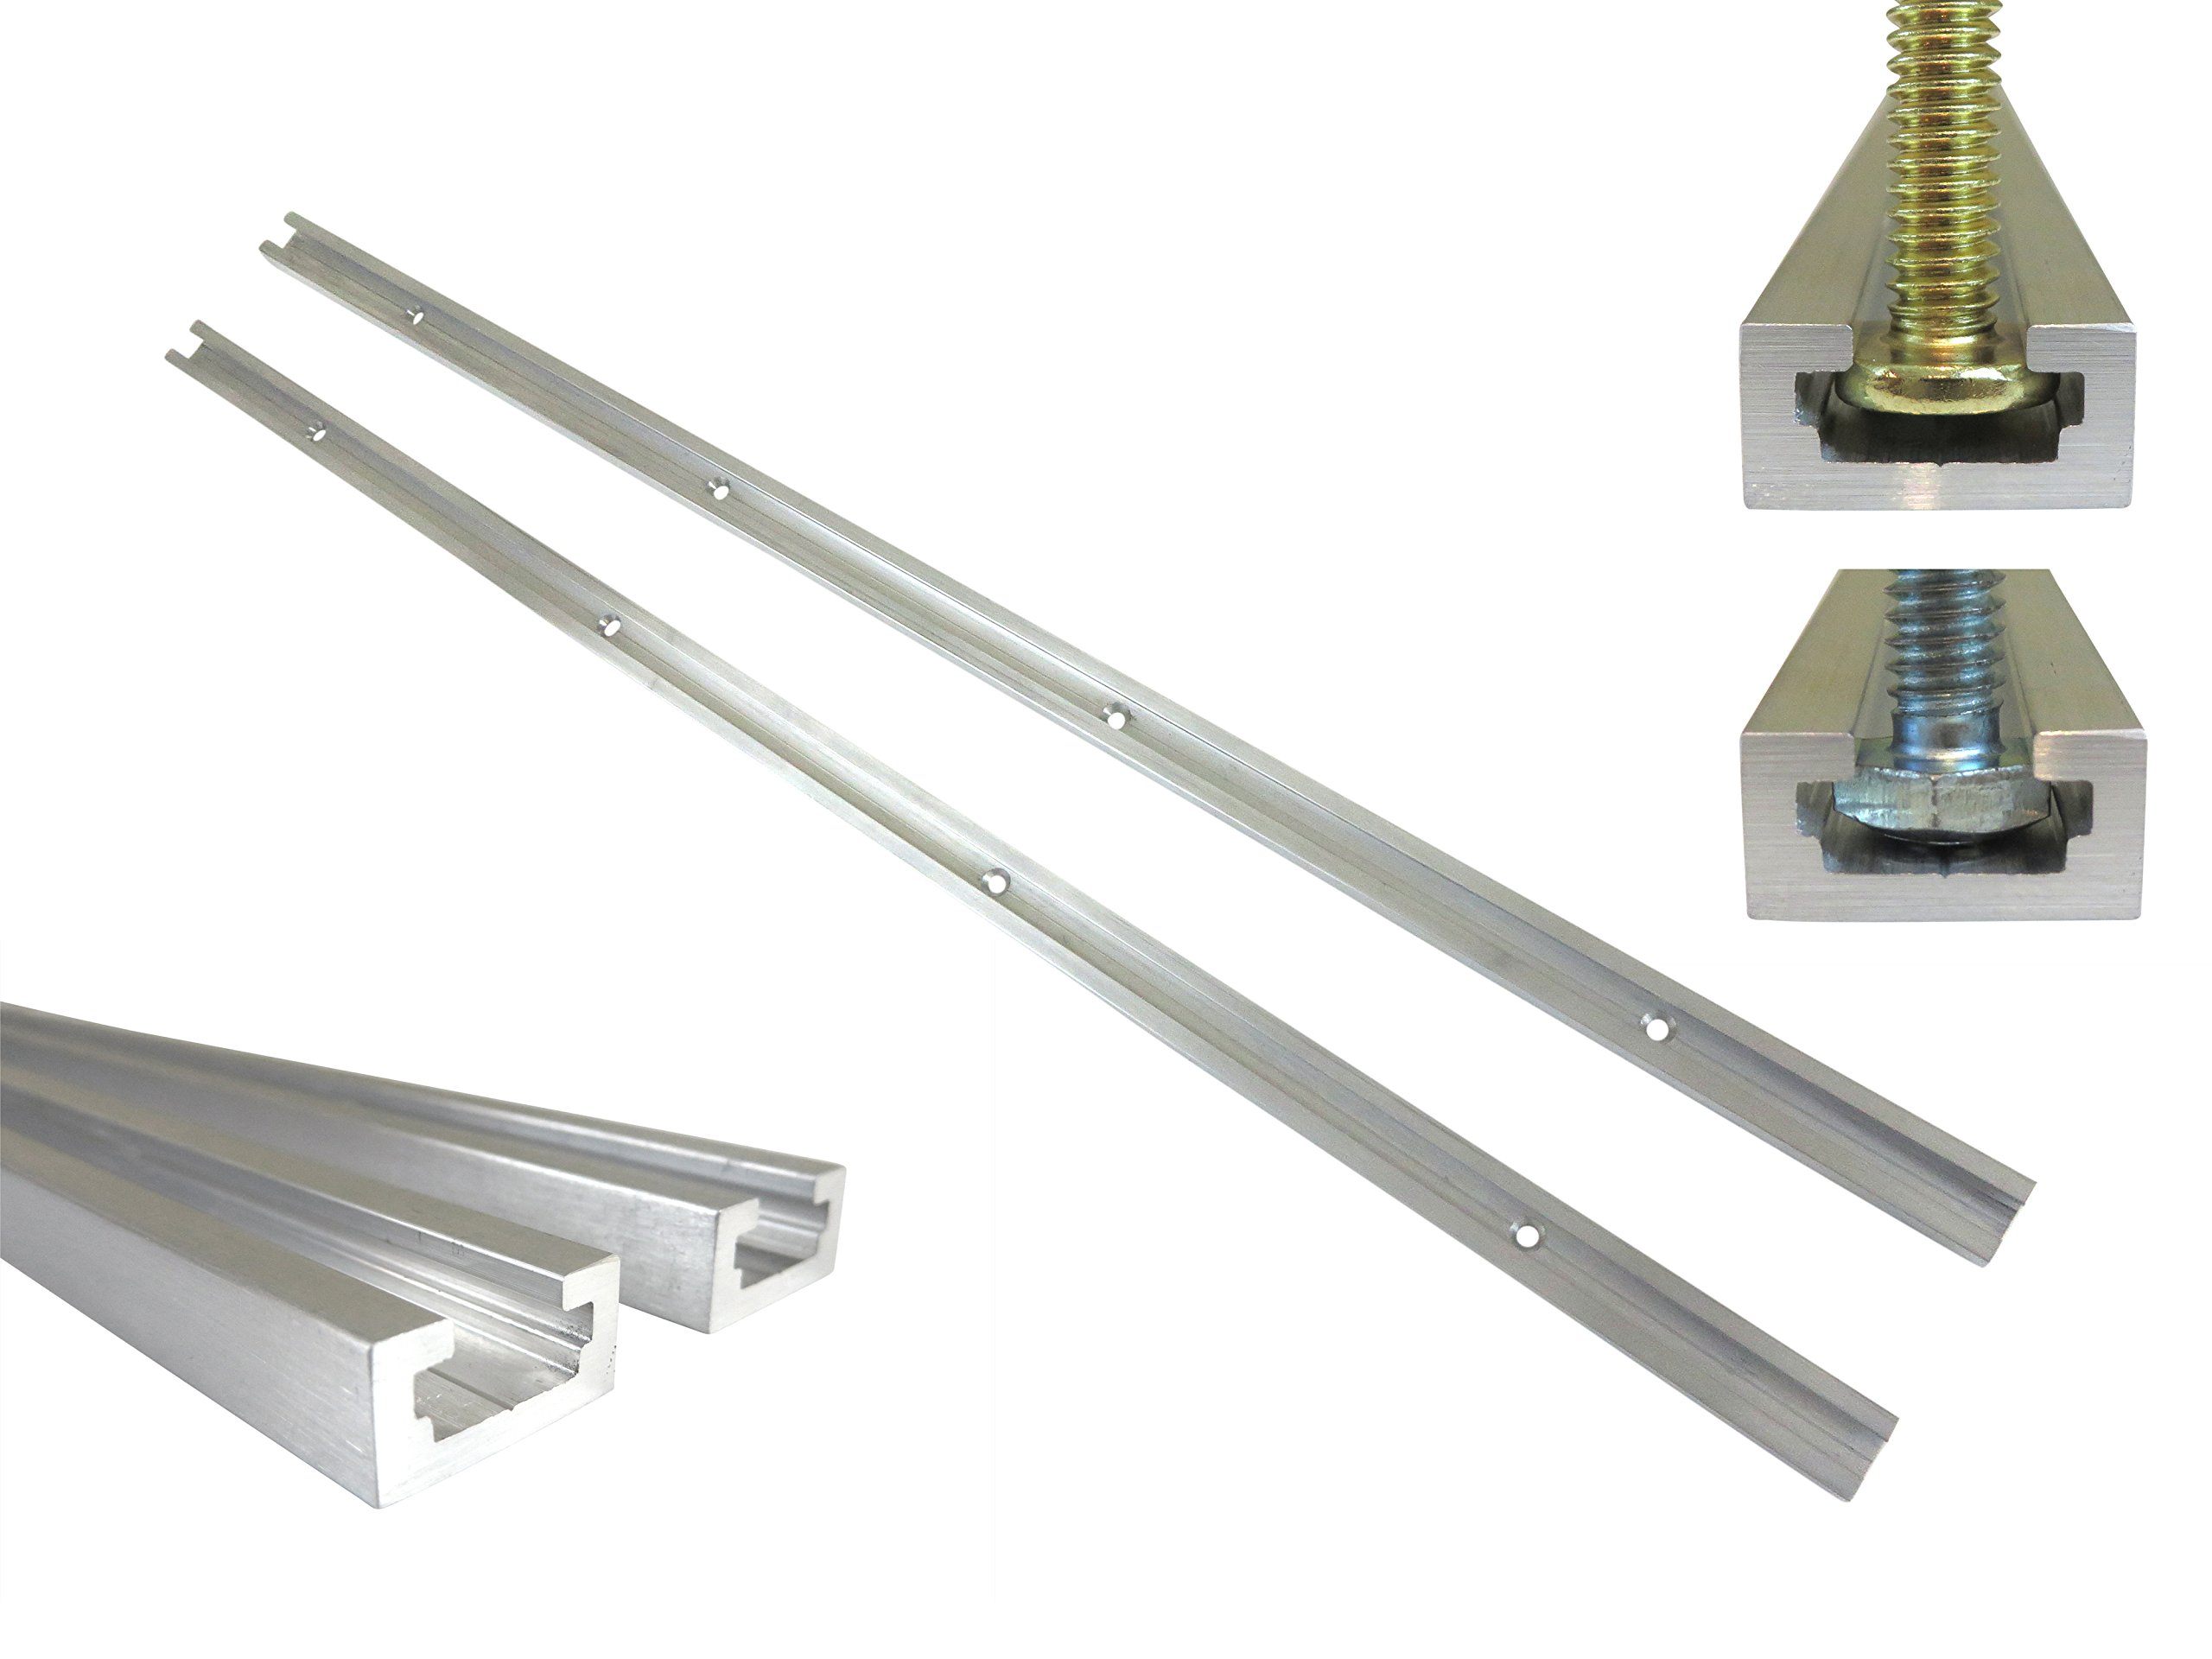 Lot 2 Each, 36'' Aluminum T Track 3/4'' by 3/8'' Slot, Accepts 1/4'' Hex Bolts, 1/4'' or 5/16'' T Bolts, Countersunk Holes Every 6'' 112122